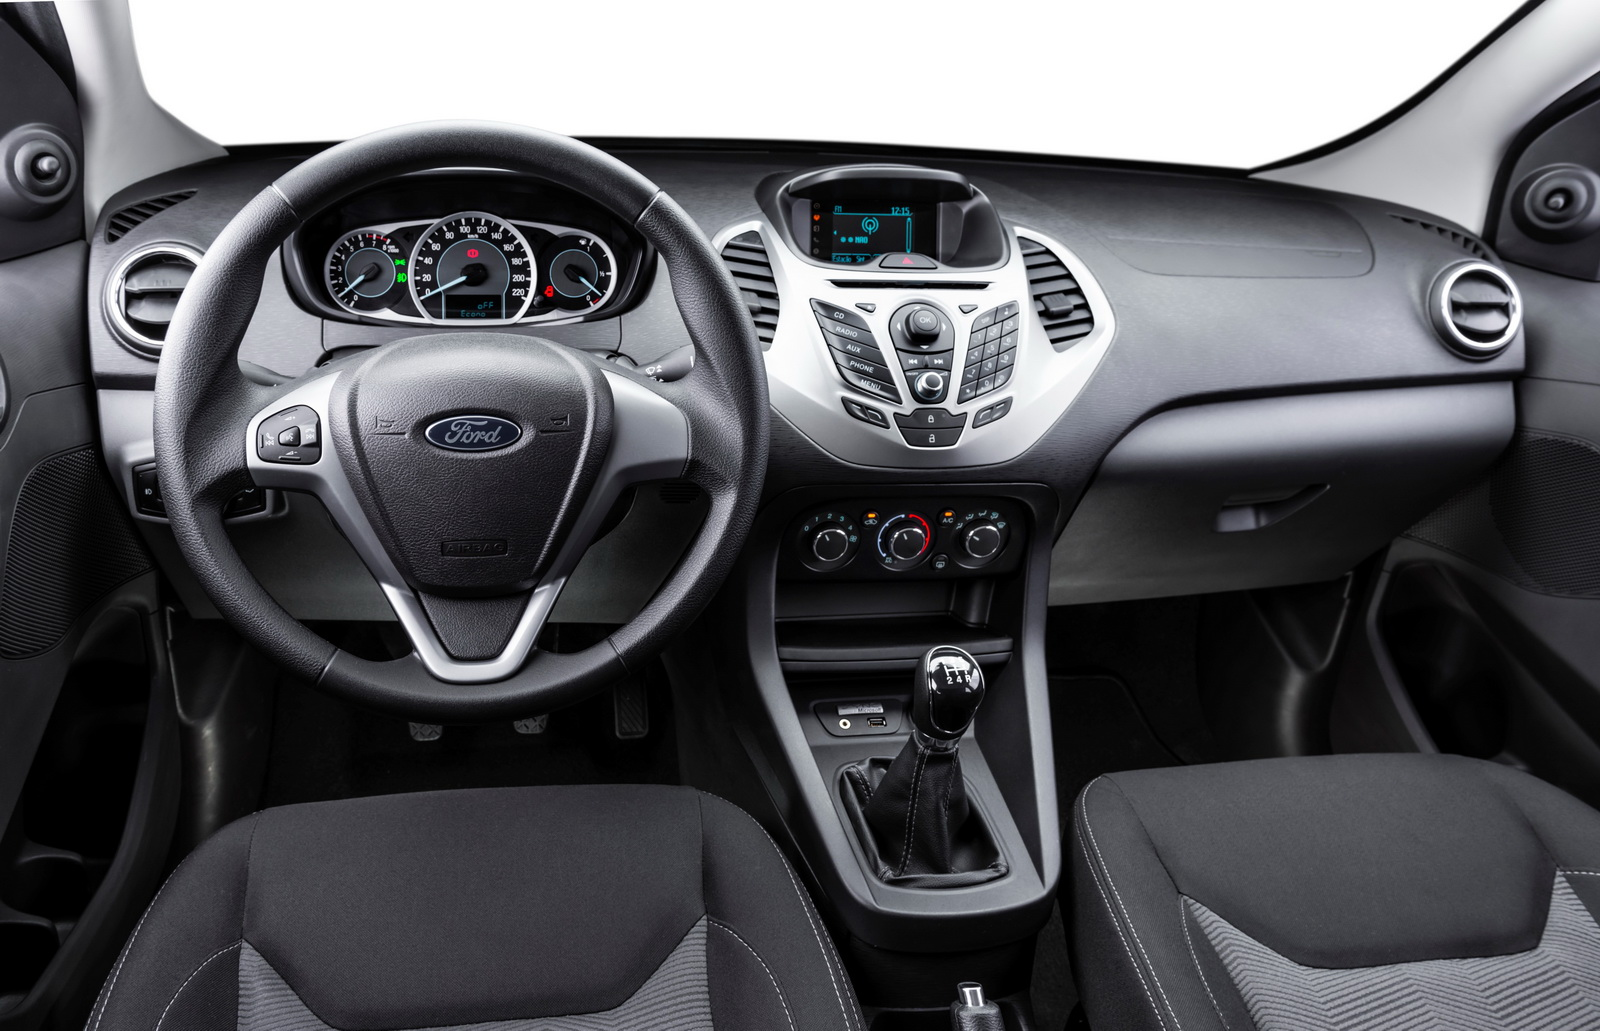 Interior of the 2015 Ka for Brazilian markets. Interior do novo Ka 2015.